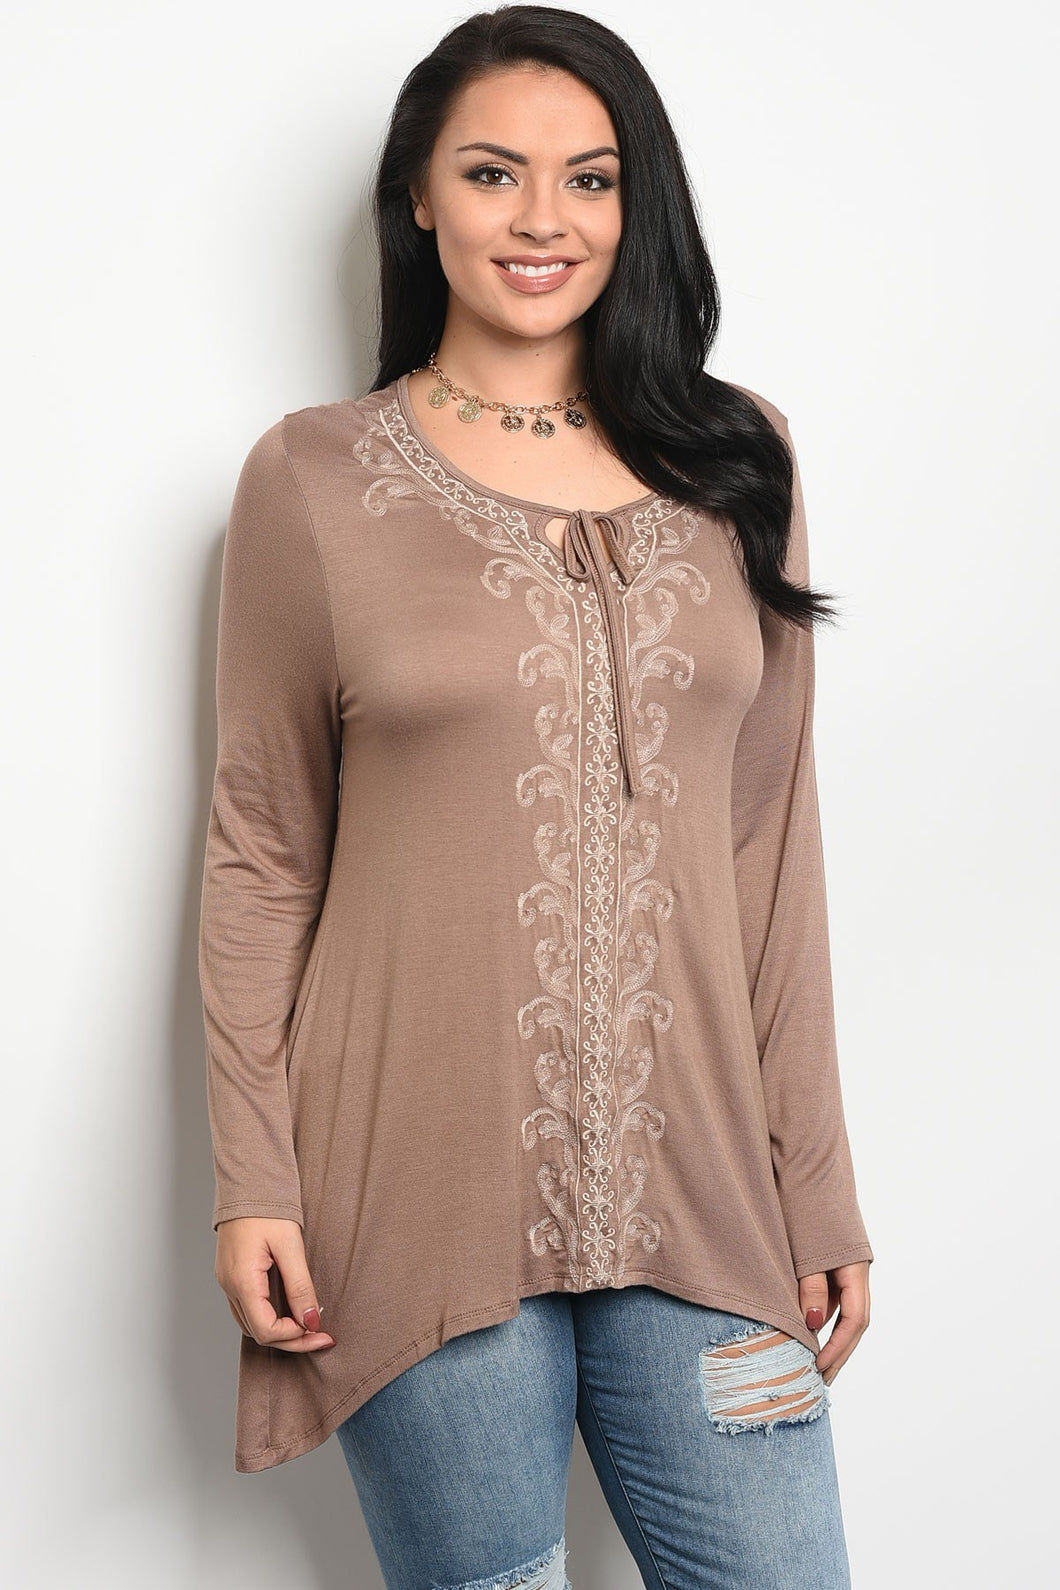 Ladies fashion plus size long sleeve light weight jersey top that features printed details and a scoop neckline